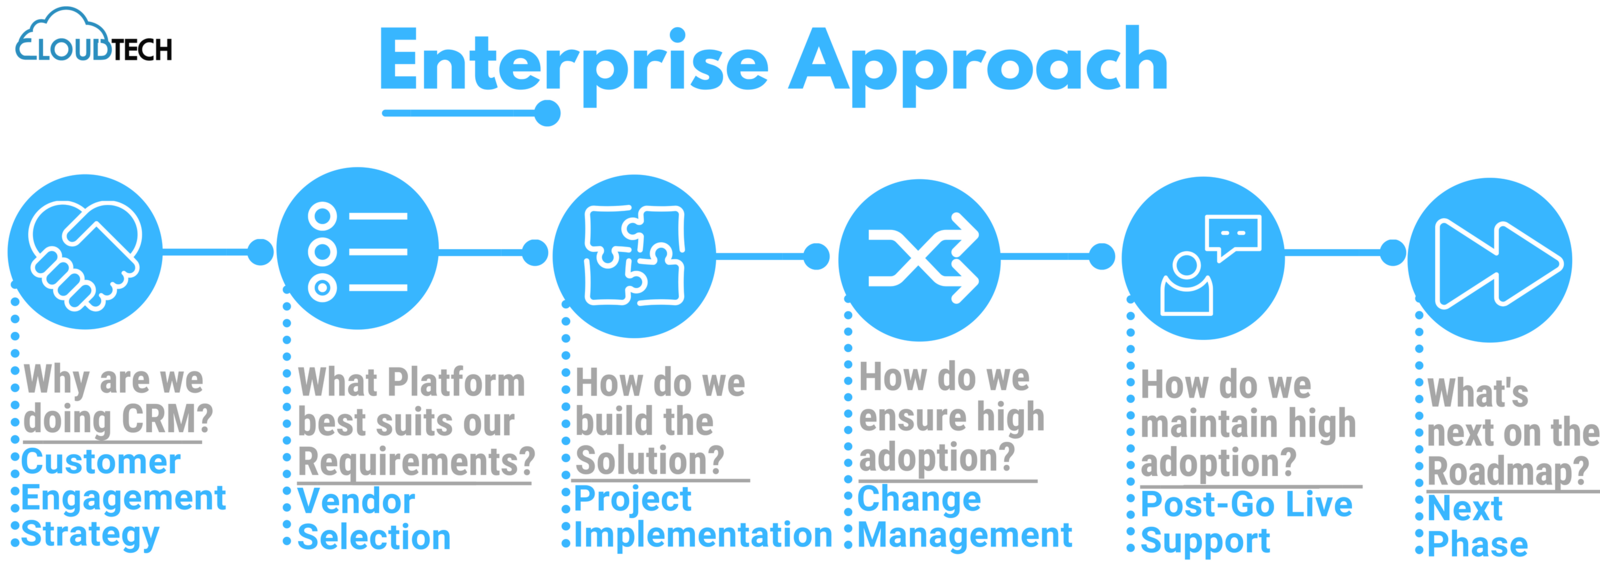 Enterprise Approach: Customer Engagement Strategy, Vendor Selection, Project Implementation, Change Management, Post-Go Live Support, Next Phase